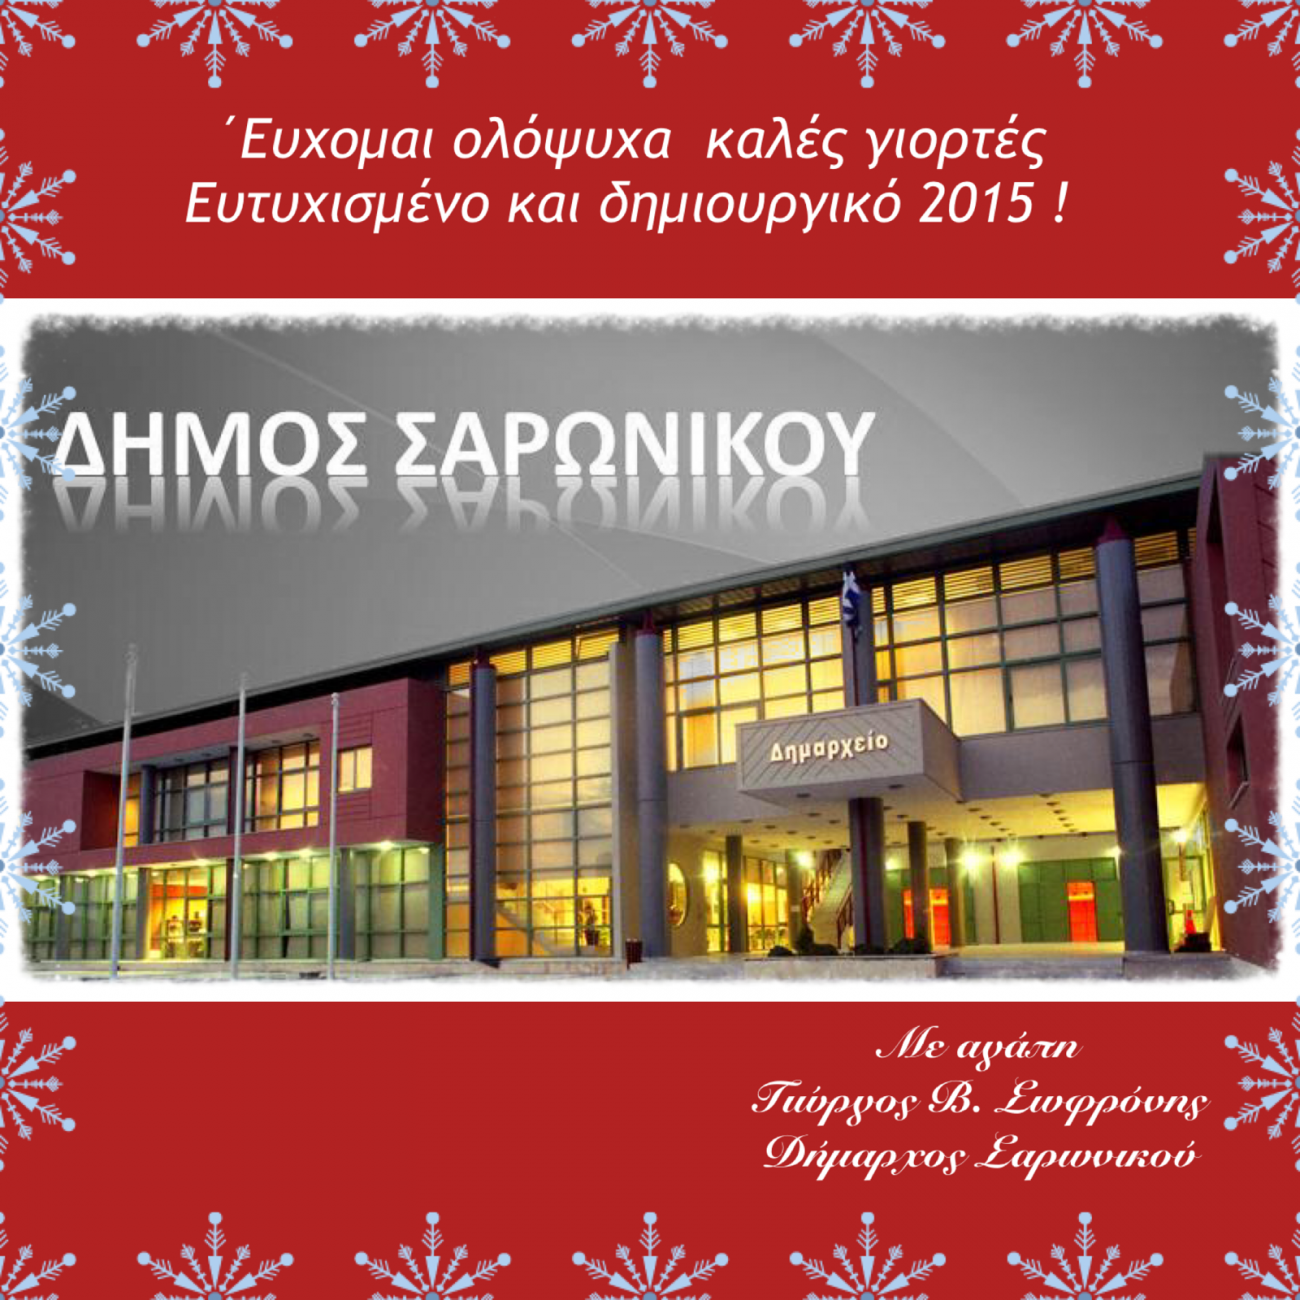 SARONIKOS_SEASON GREETINGS